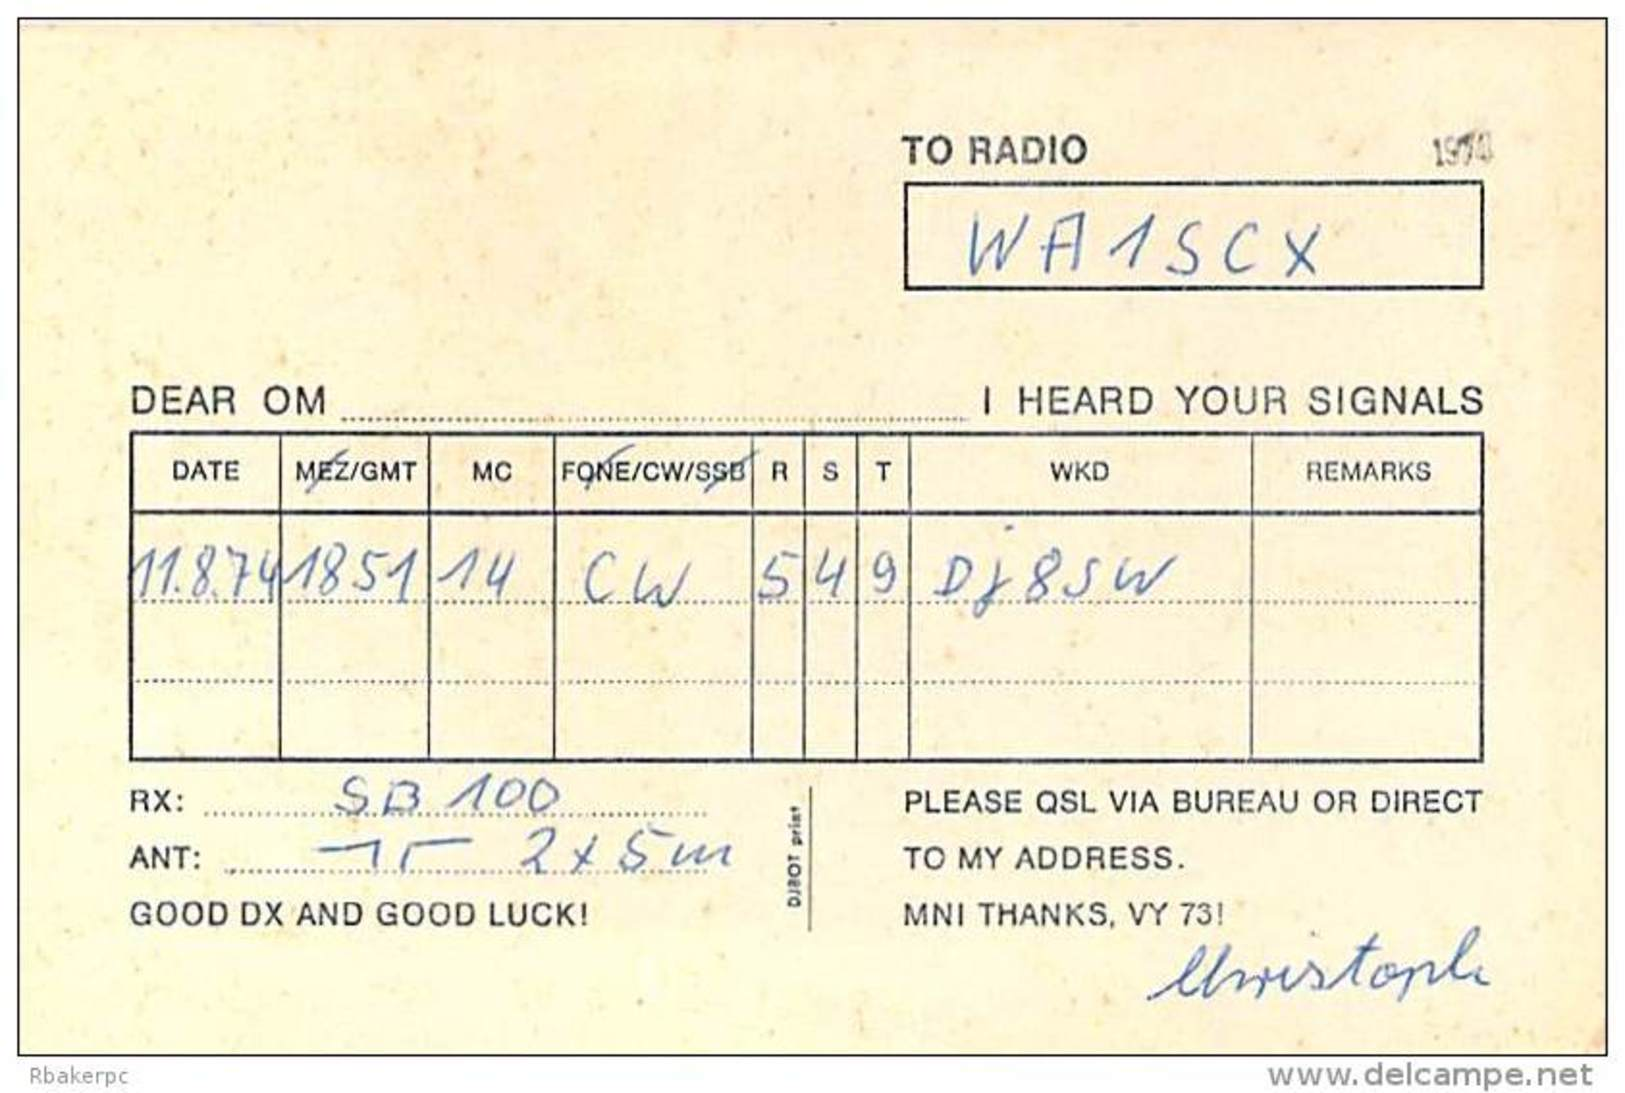 Amateur Radio Contact SWL Card From DE-R09/19049 In Germany - 1974 - 2 Scams - Radio Amateur